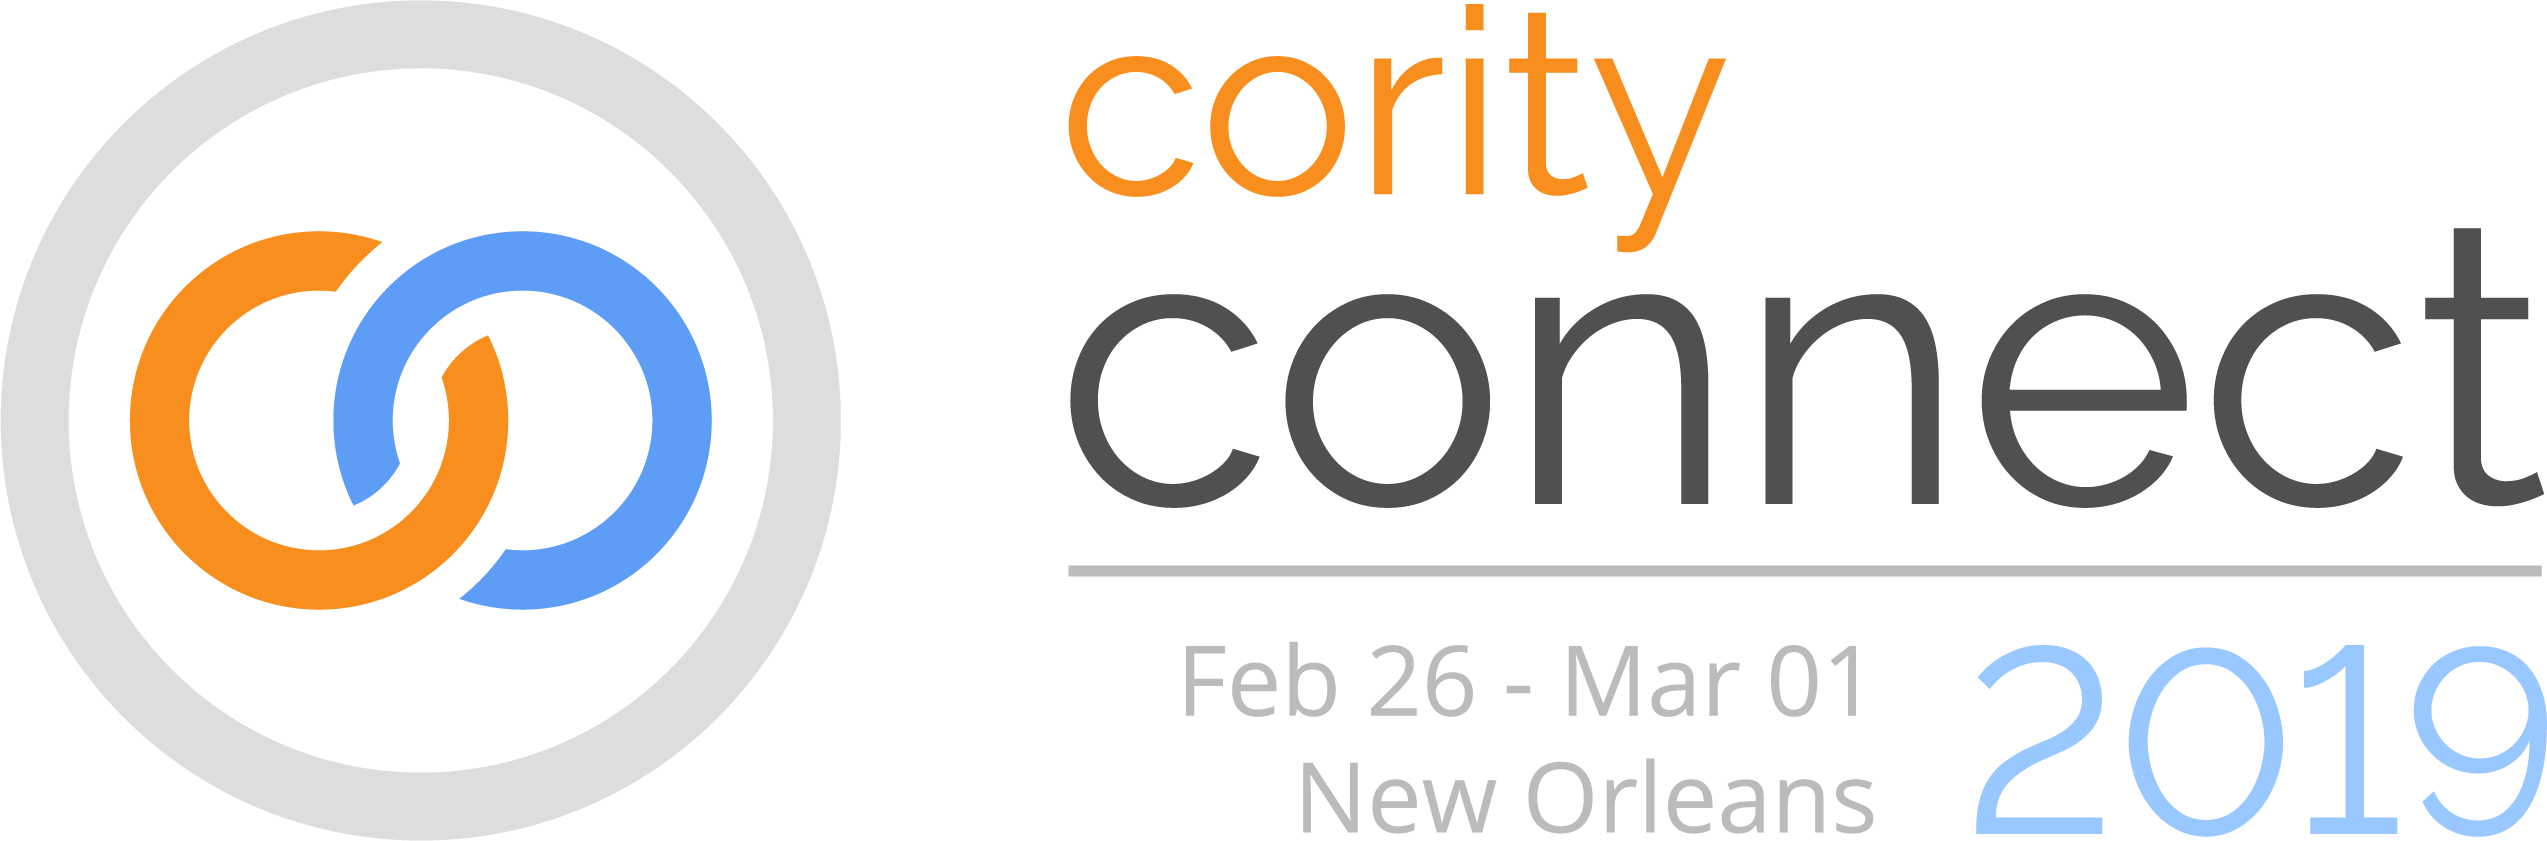 Cority Connect Logo Location Year Basic Colors FINAL 1